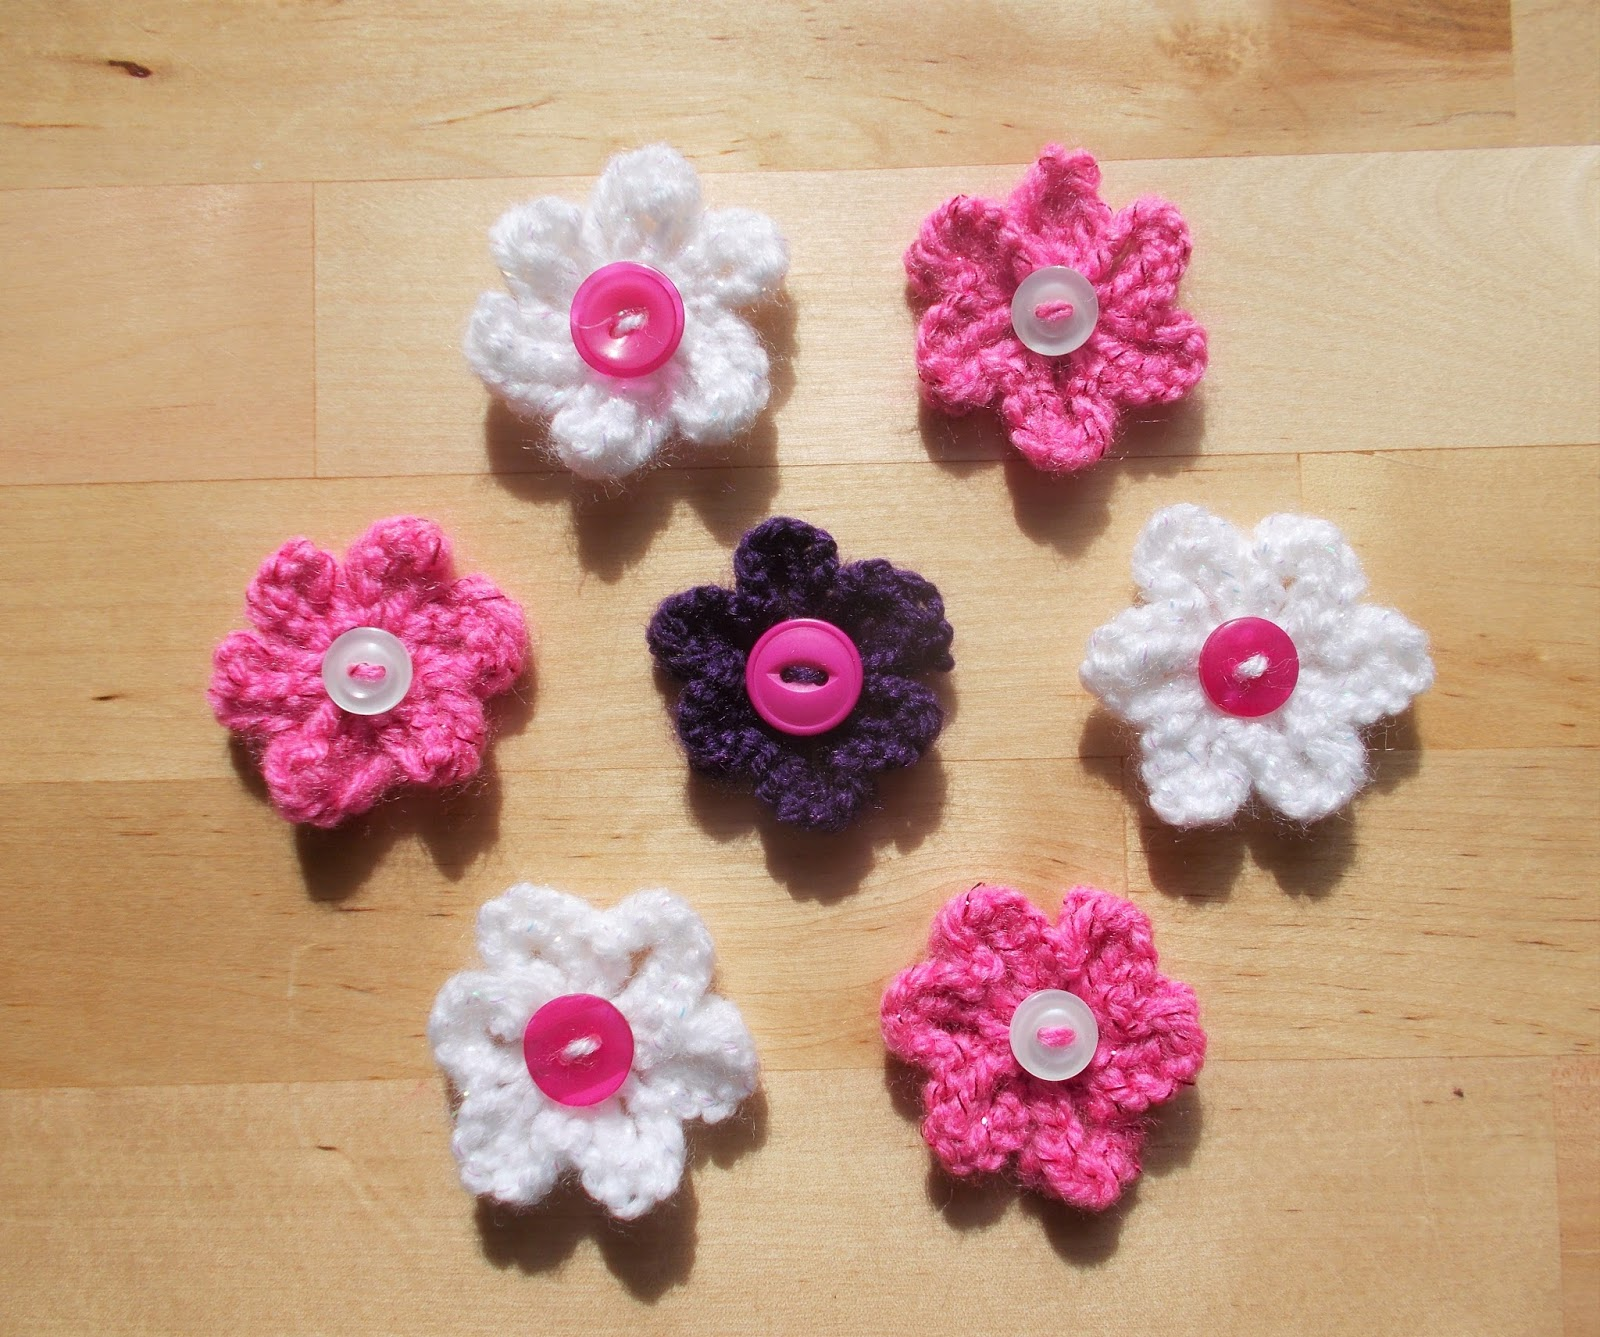 knitted flowers these pretty little flowers are so quick and easy to knit. jyifjmj